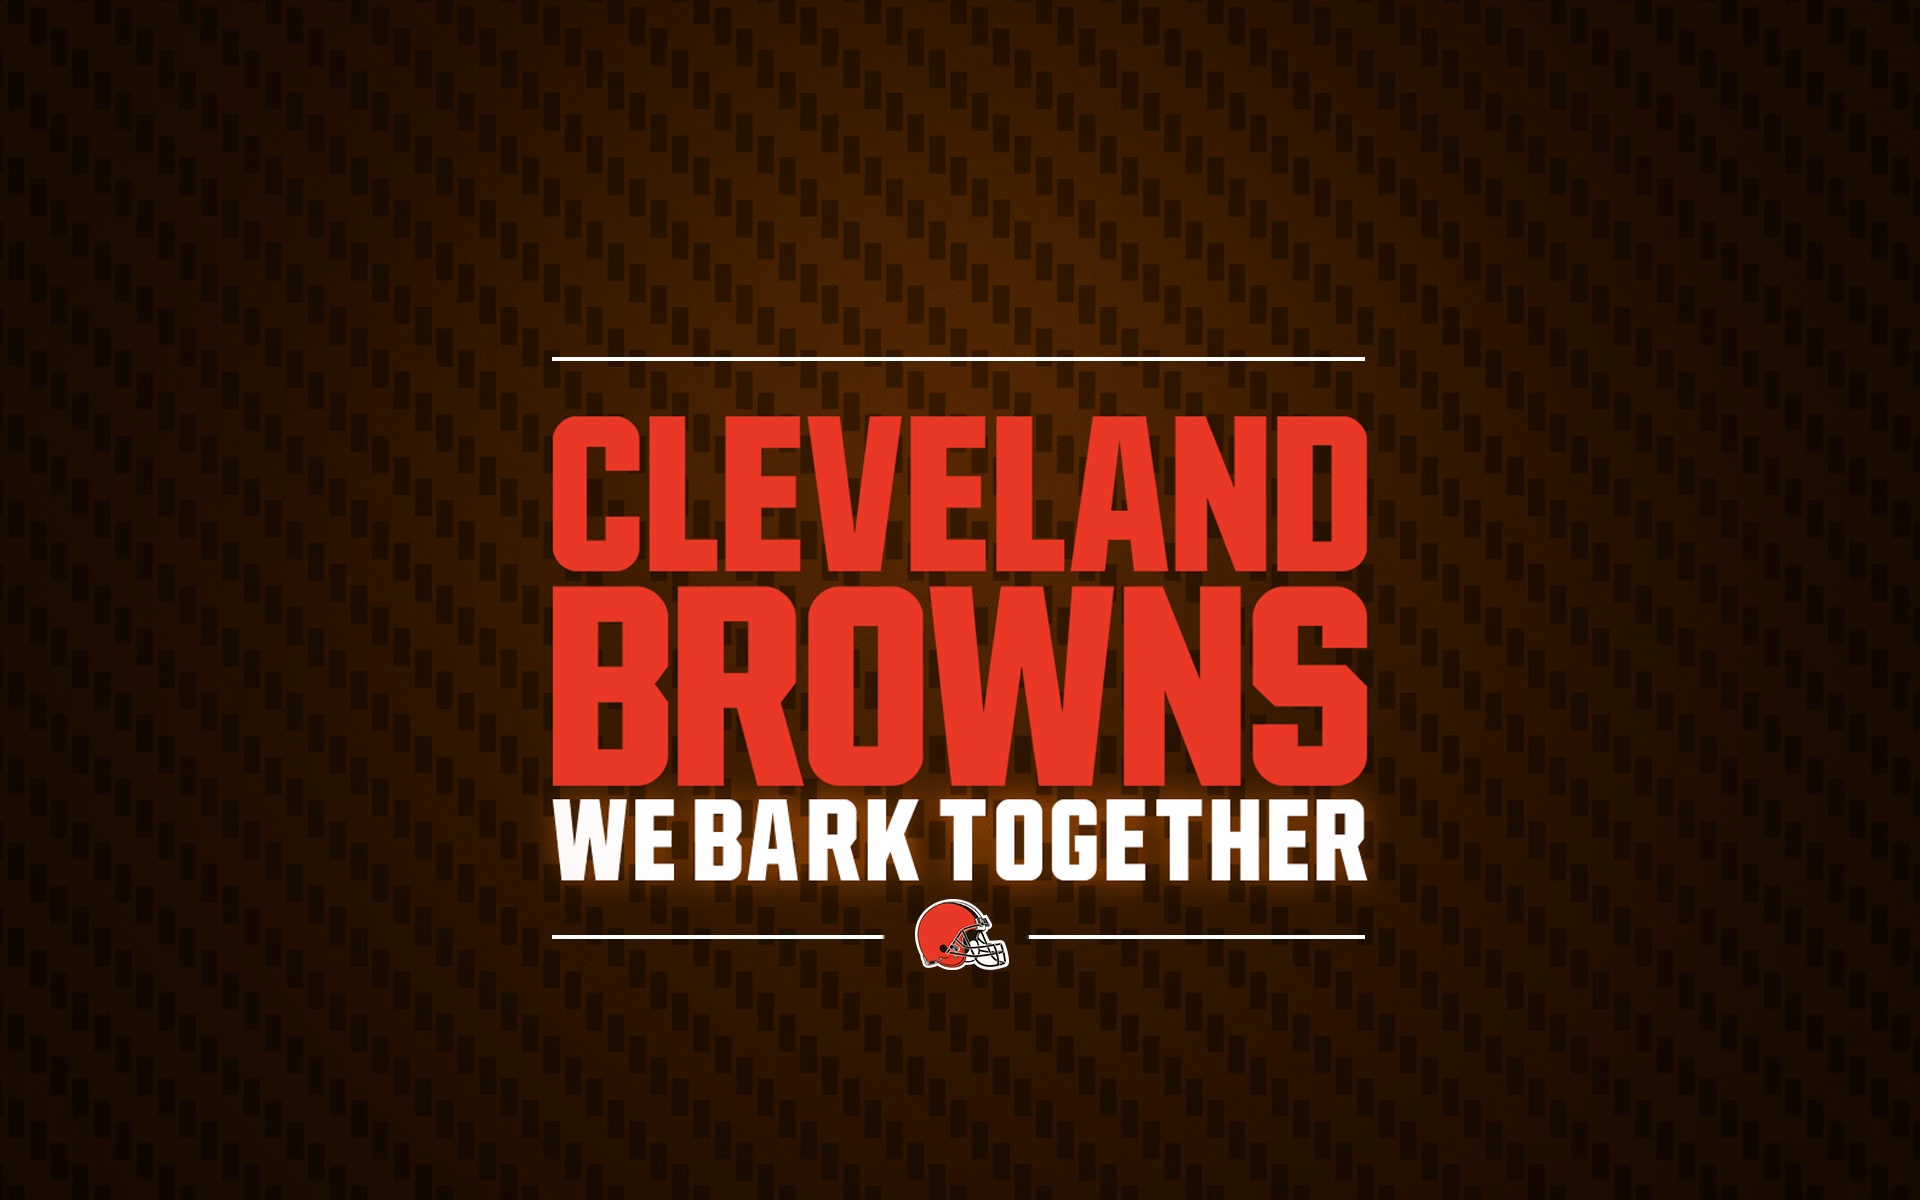 Cleveland Browns Schedule 2016 Wallpapers - Wallpaper Cave